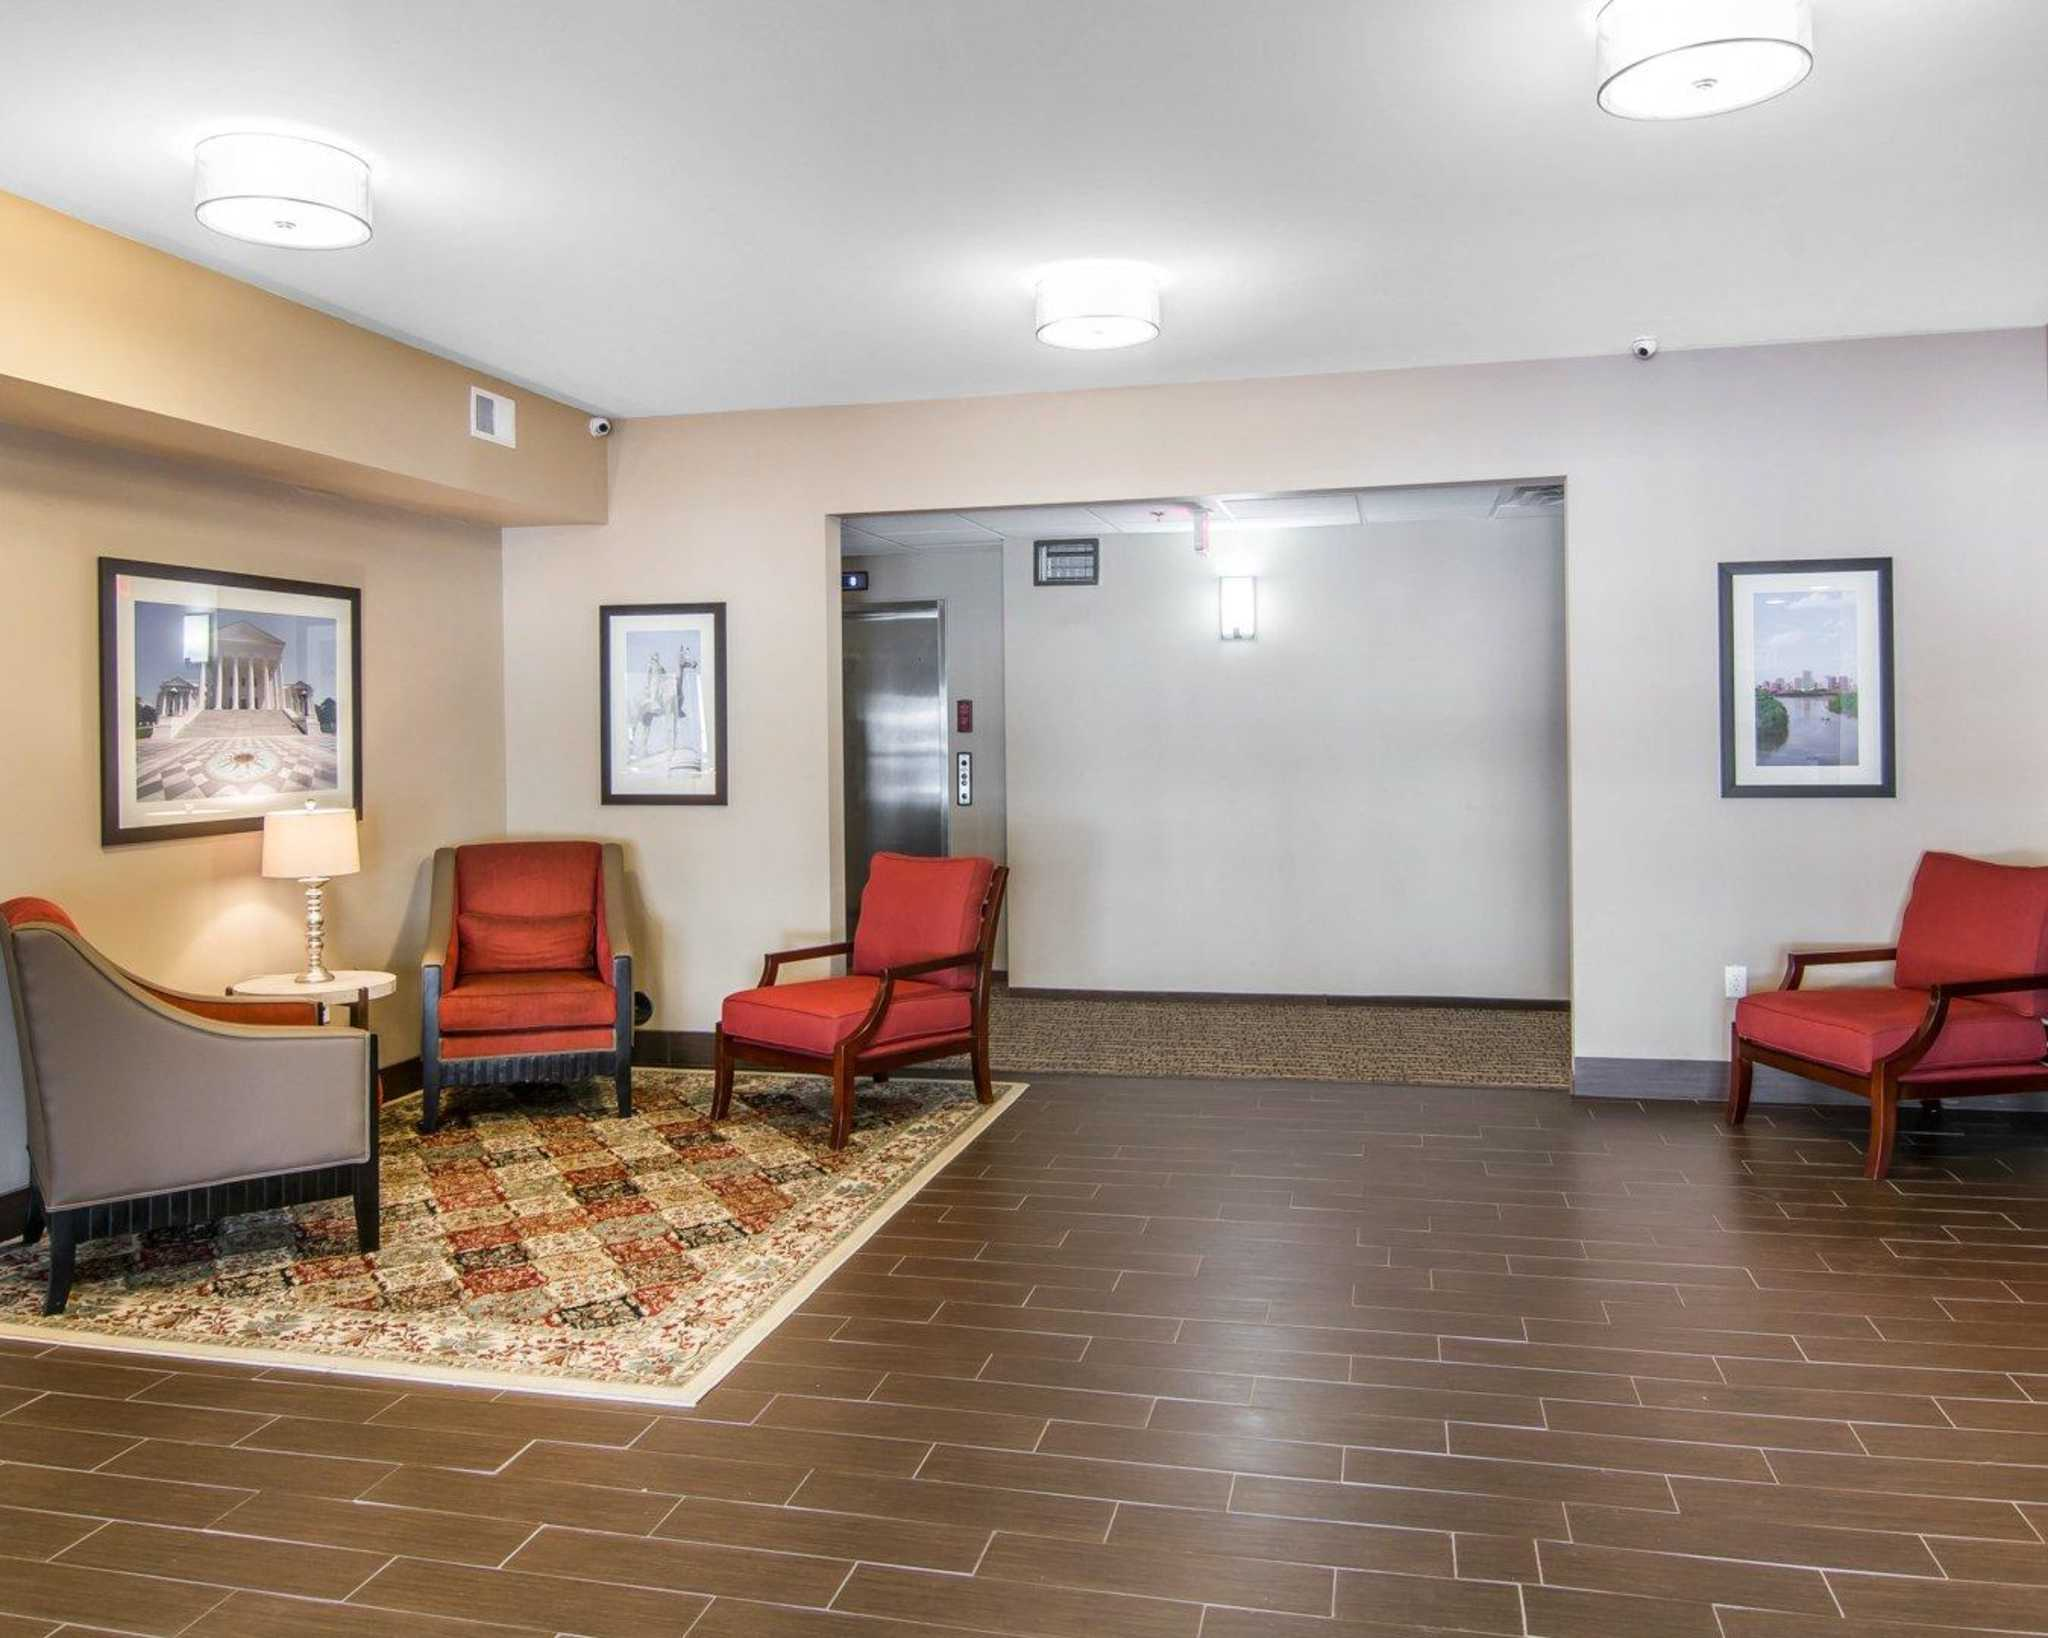 Comfort Inn South Chesterfield - Colonial Heights image 16